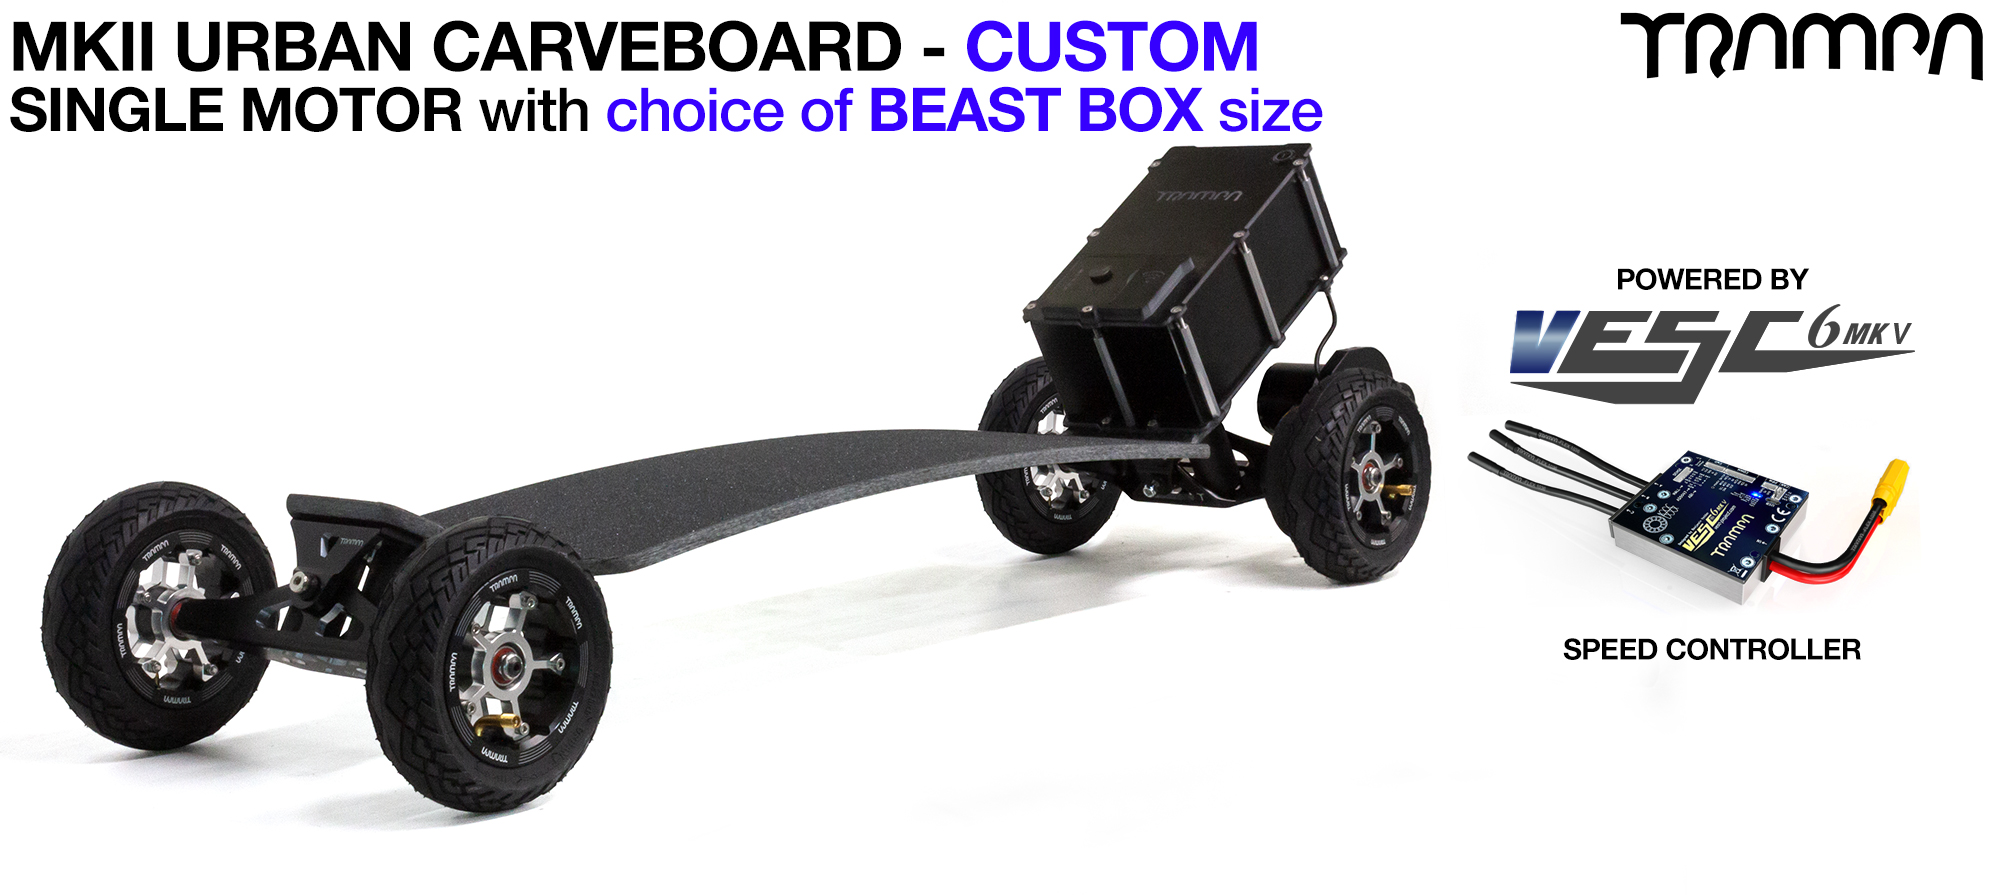 MkII TRAMPA Electric URBAN Carveboard with V6 VESC & 12A BEAST Box Mini Spring Trucks with 6 or 7 inch Wheels - SINGLE Motor